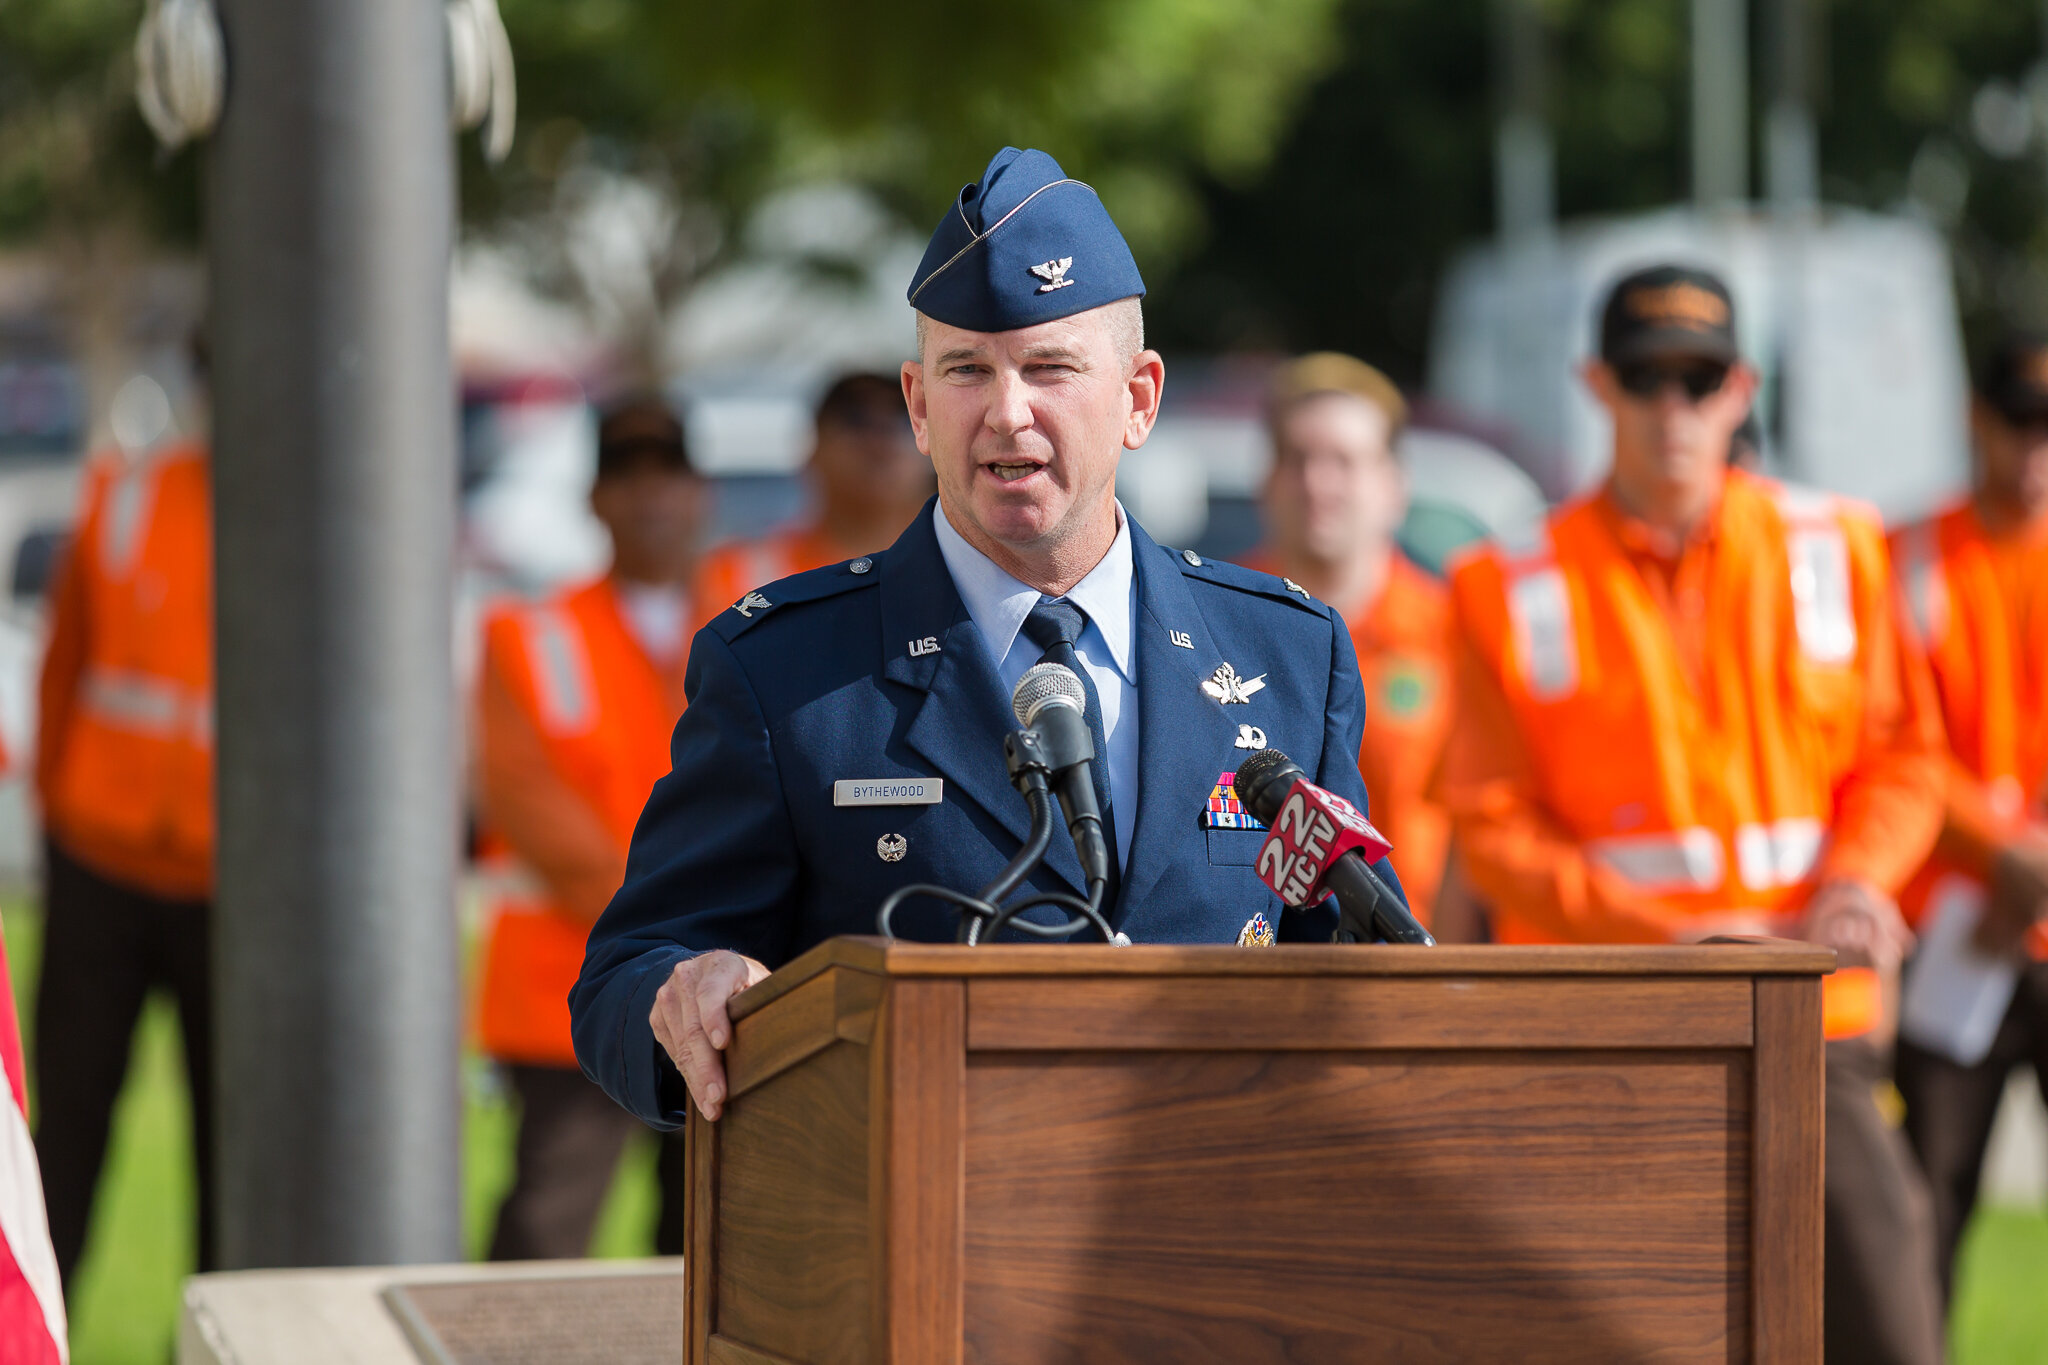 Airforce guest speaker Bythewood